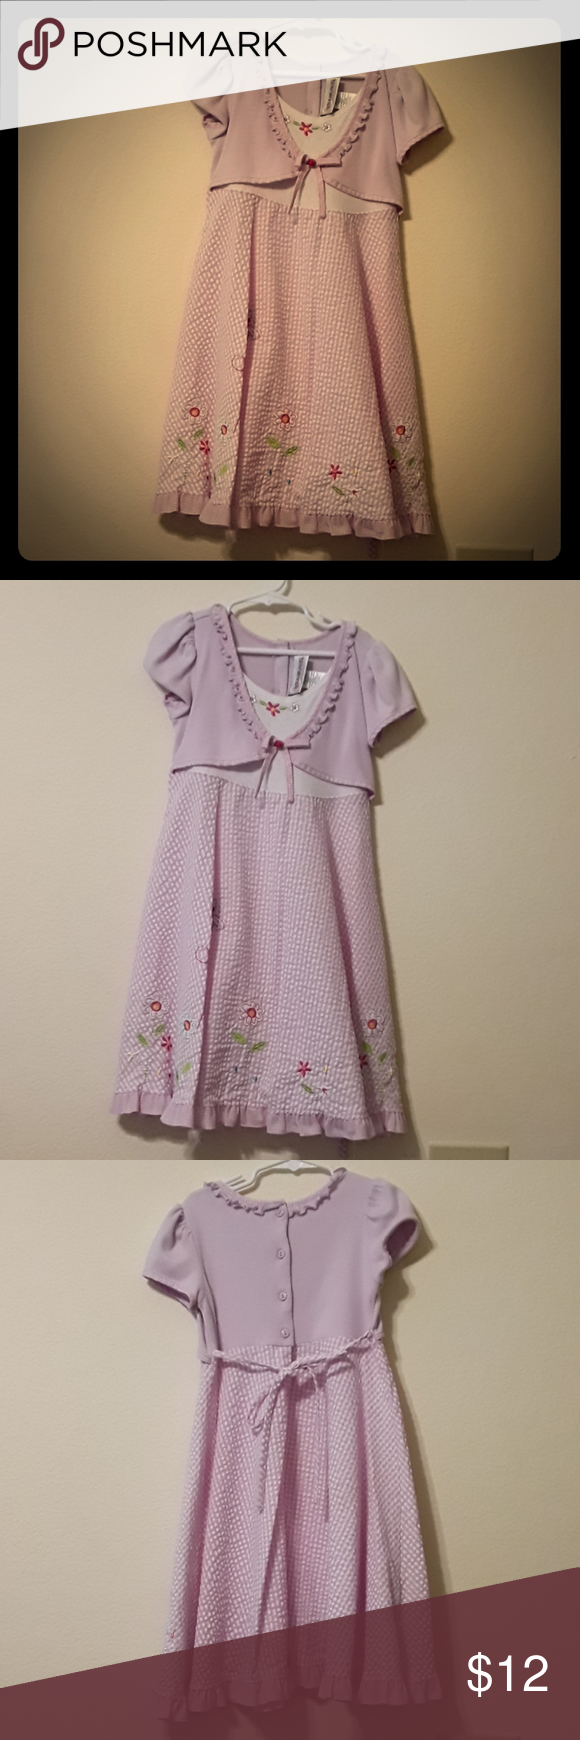 Youngland size 8 Youngland purple with flowers seersucker material size 8. Youngland Dresses Casual